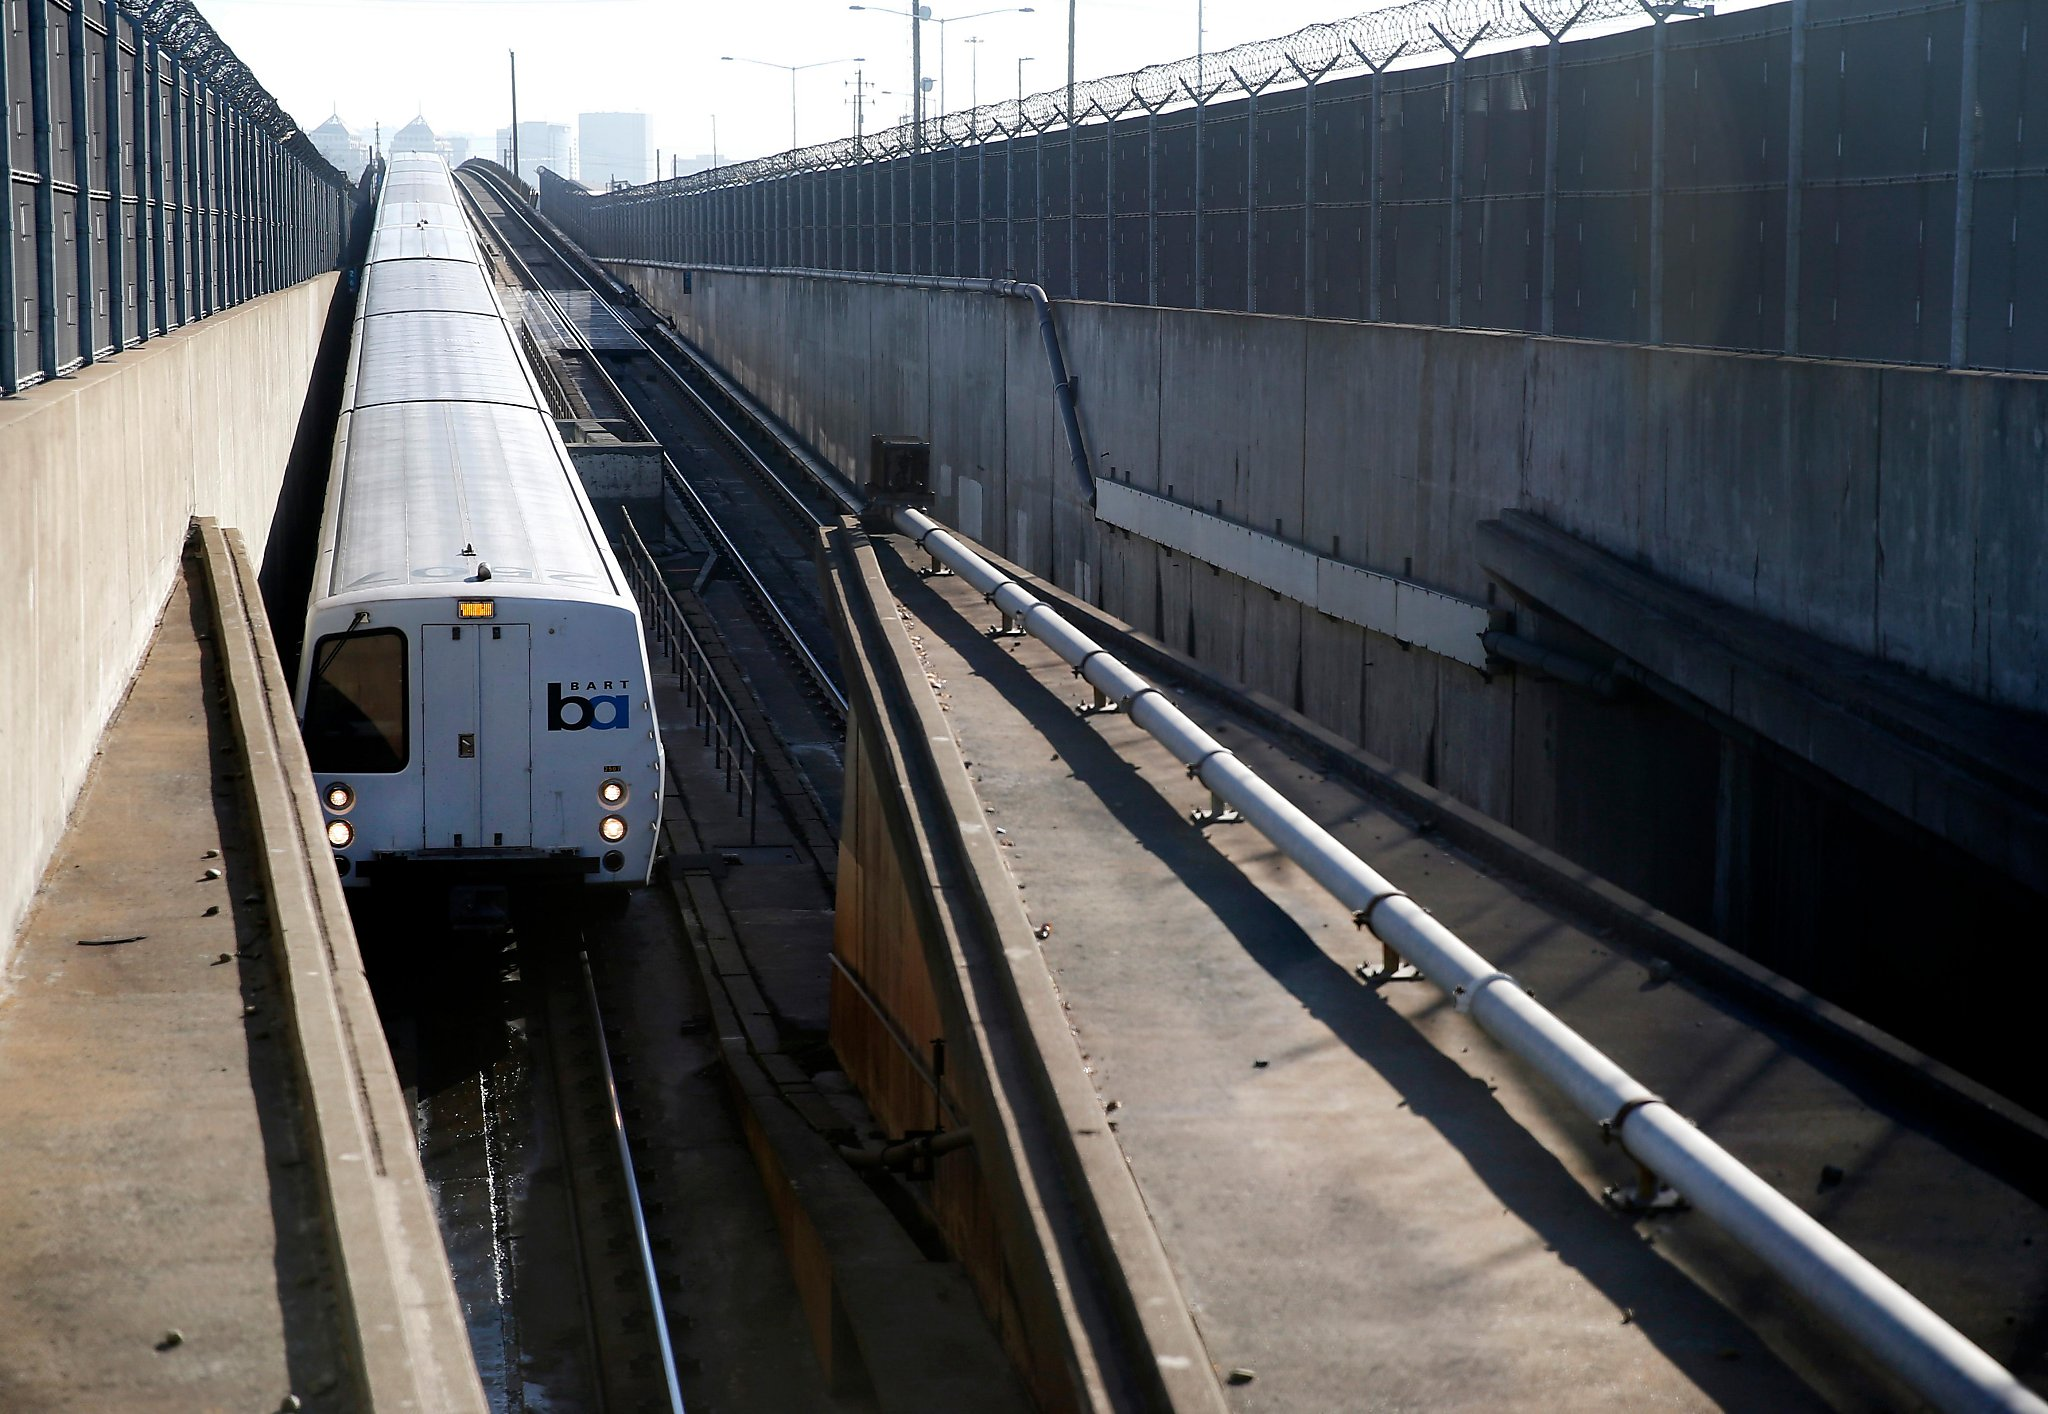 Buses may replace BART's early morning trains during Transbay Tube retrofit | San Francisco Gate